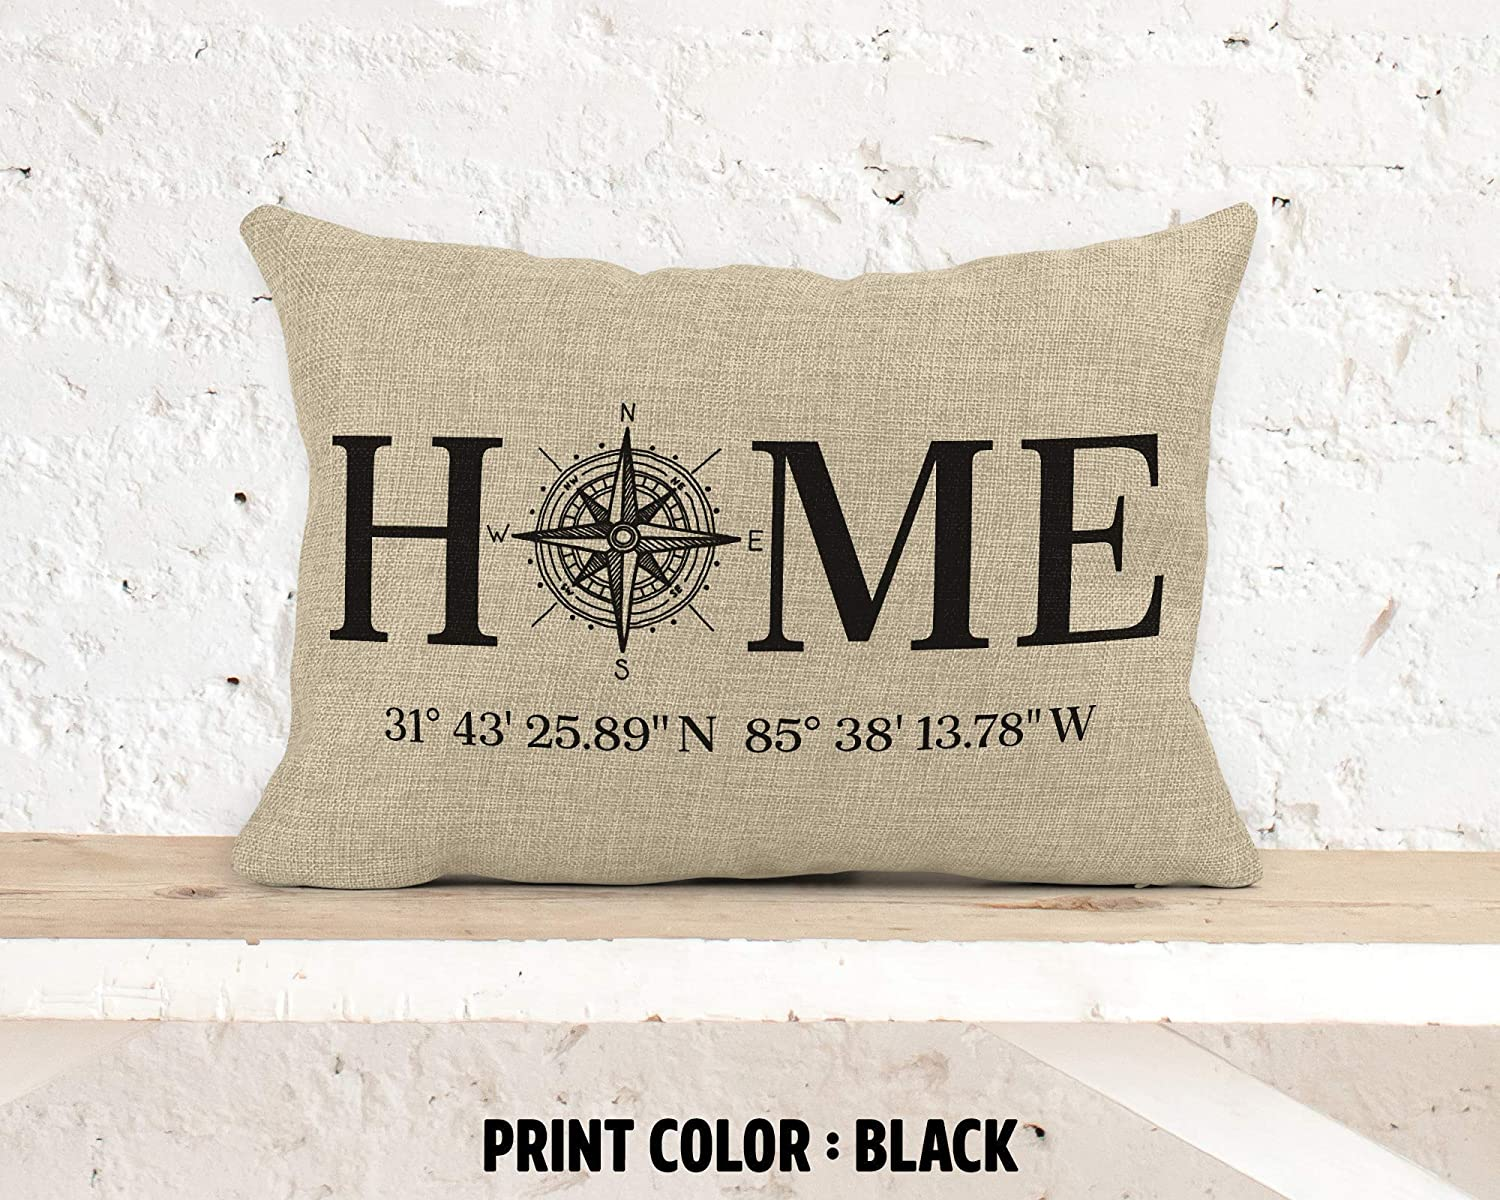 Latitude Longitude Rustic Cushion Cover 12 Inches x 18 Inches Home Coordinates Pillow Cover